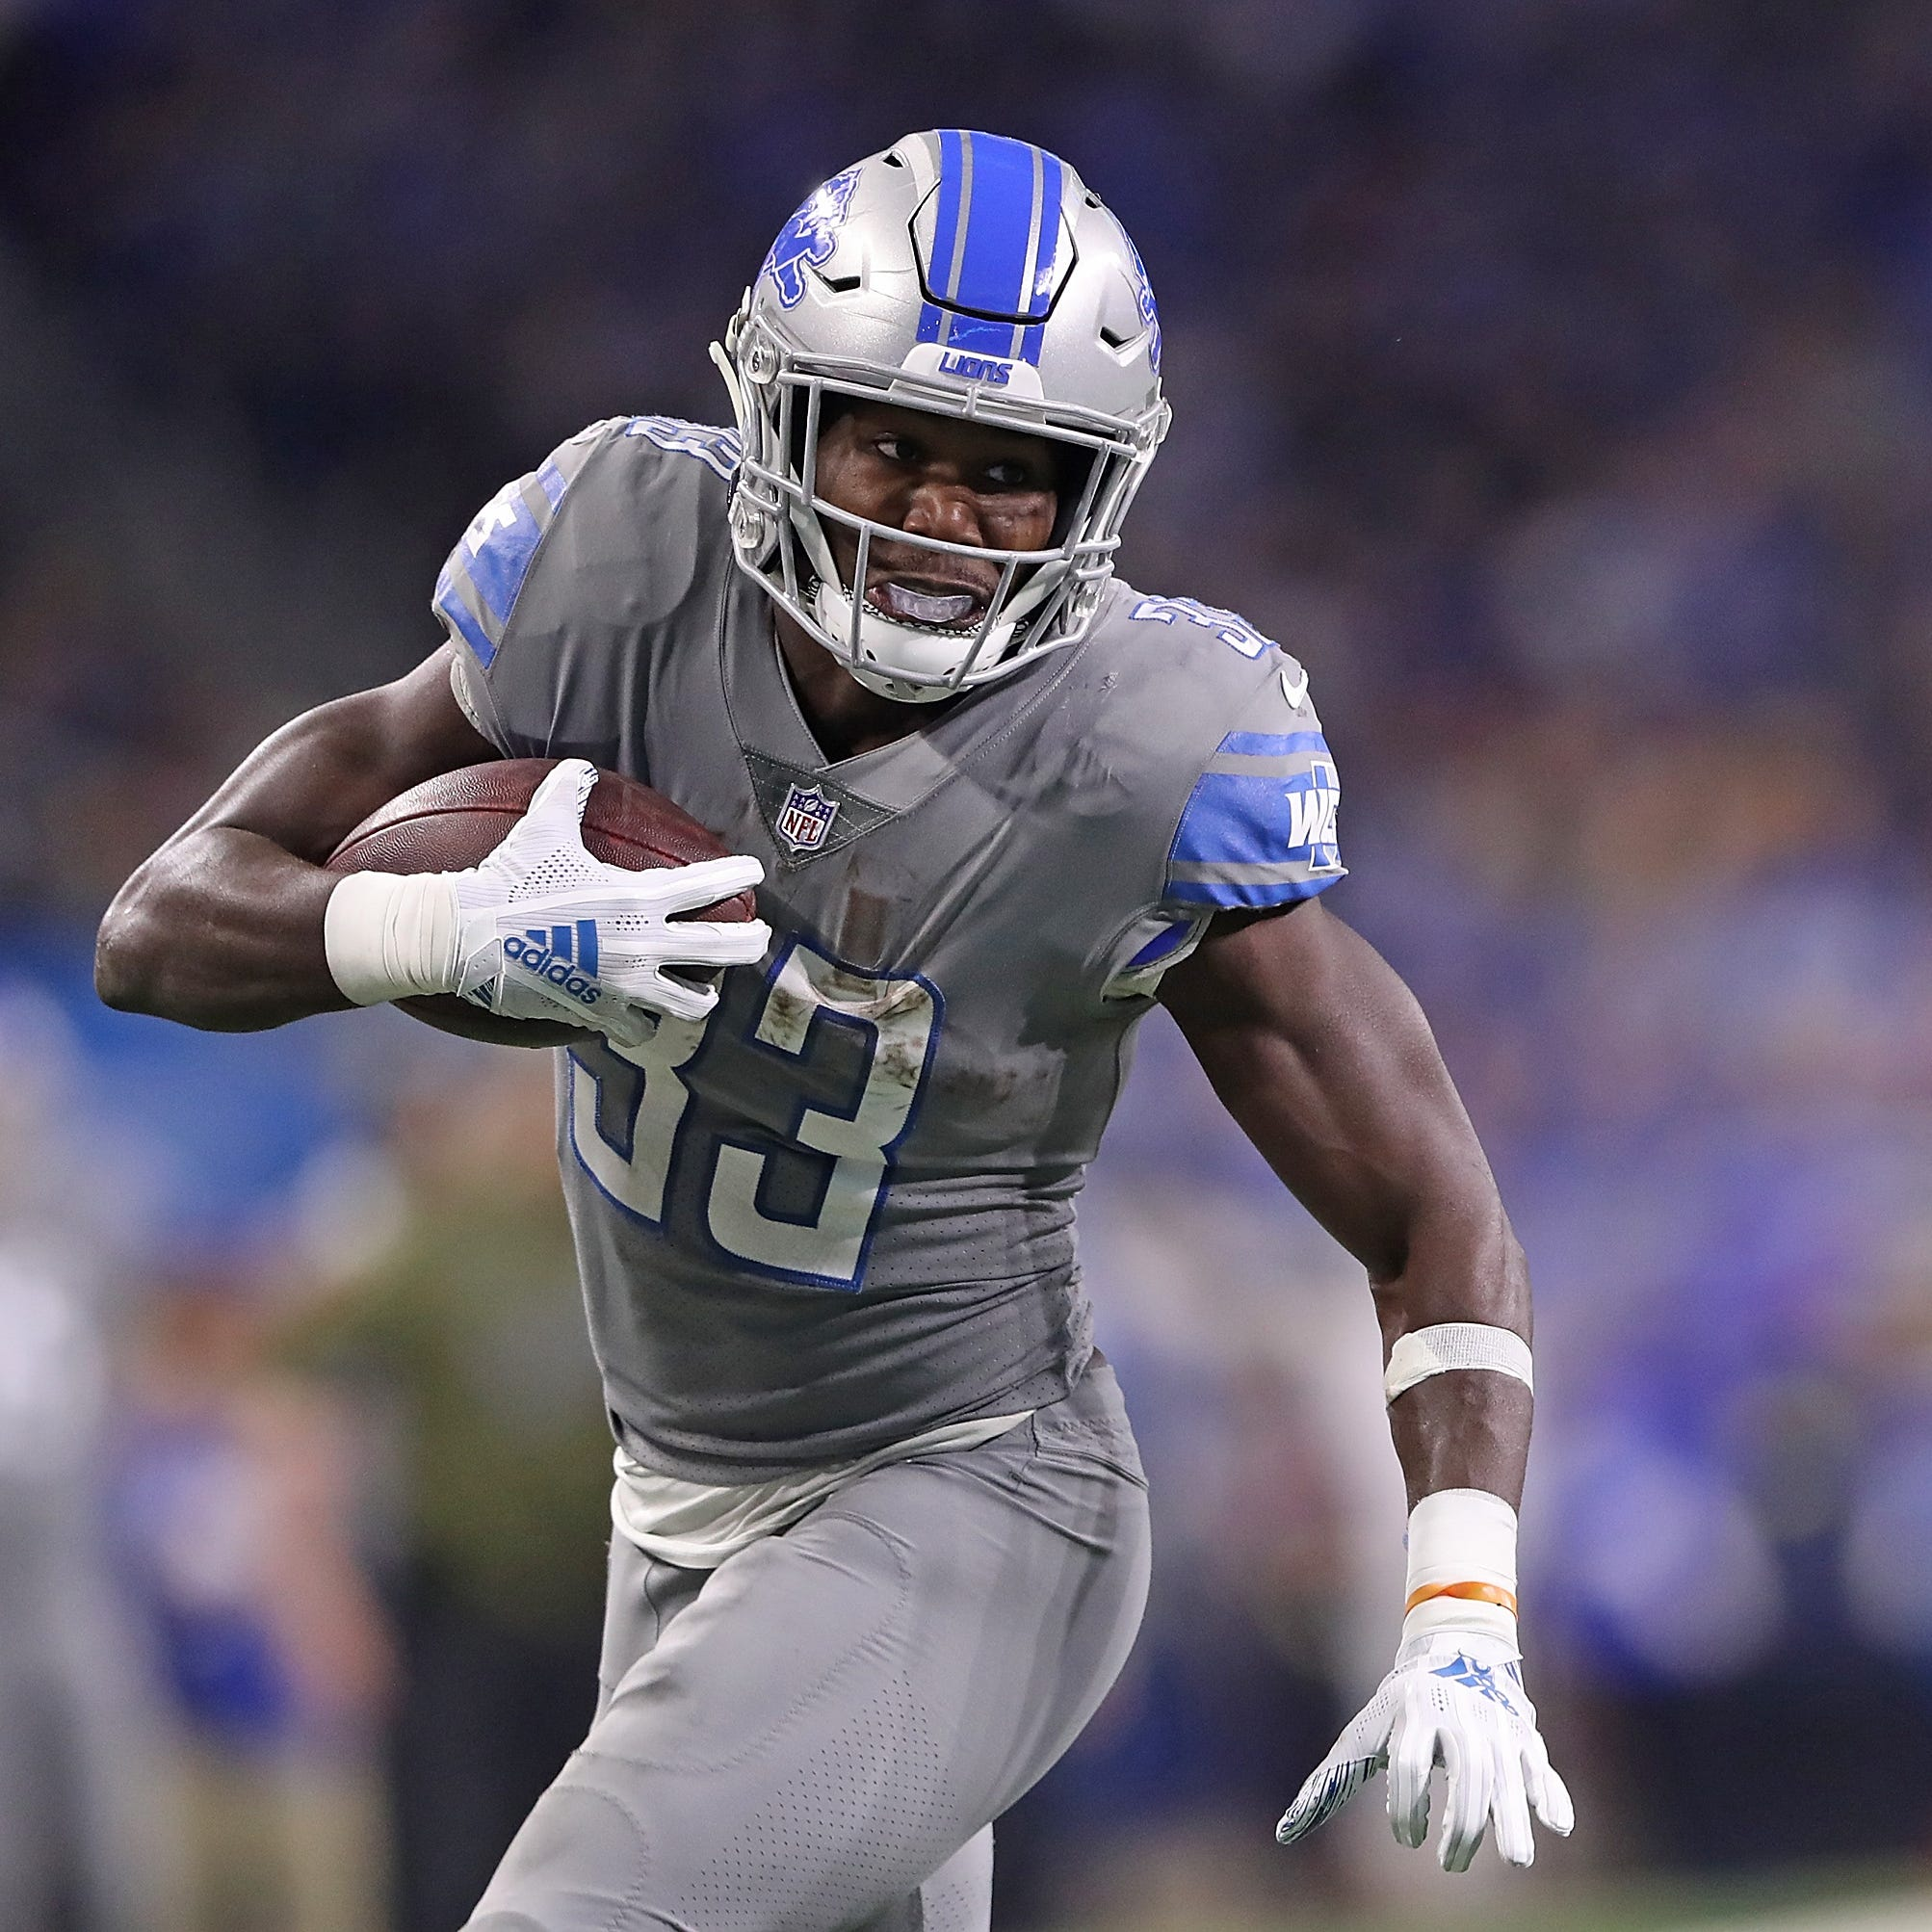 Detroit Lions win felt like a loss after Kerryon Johnson injury